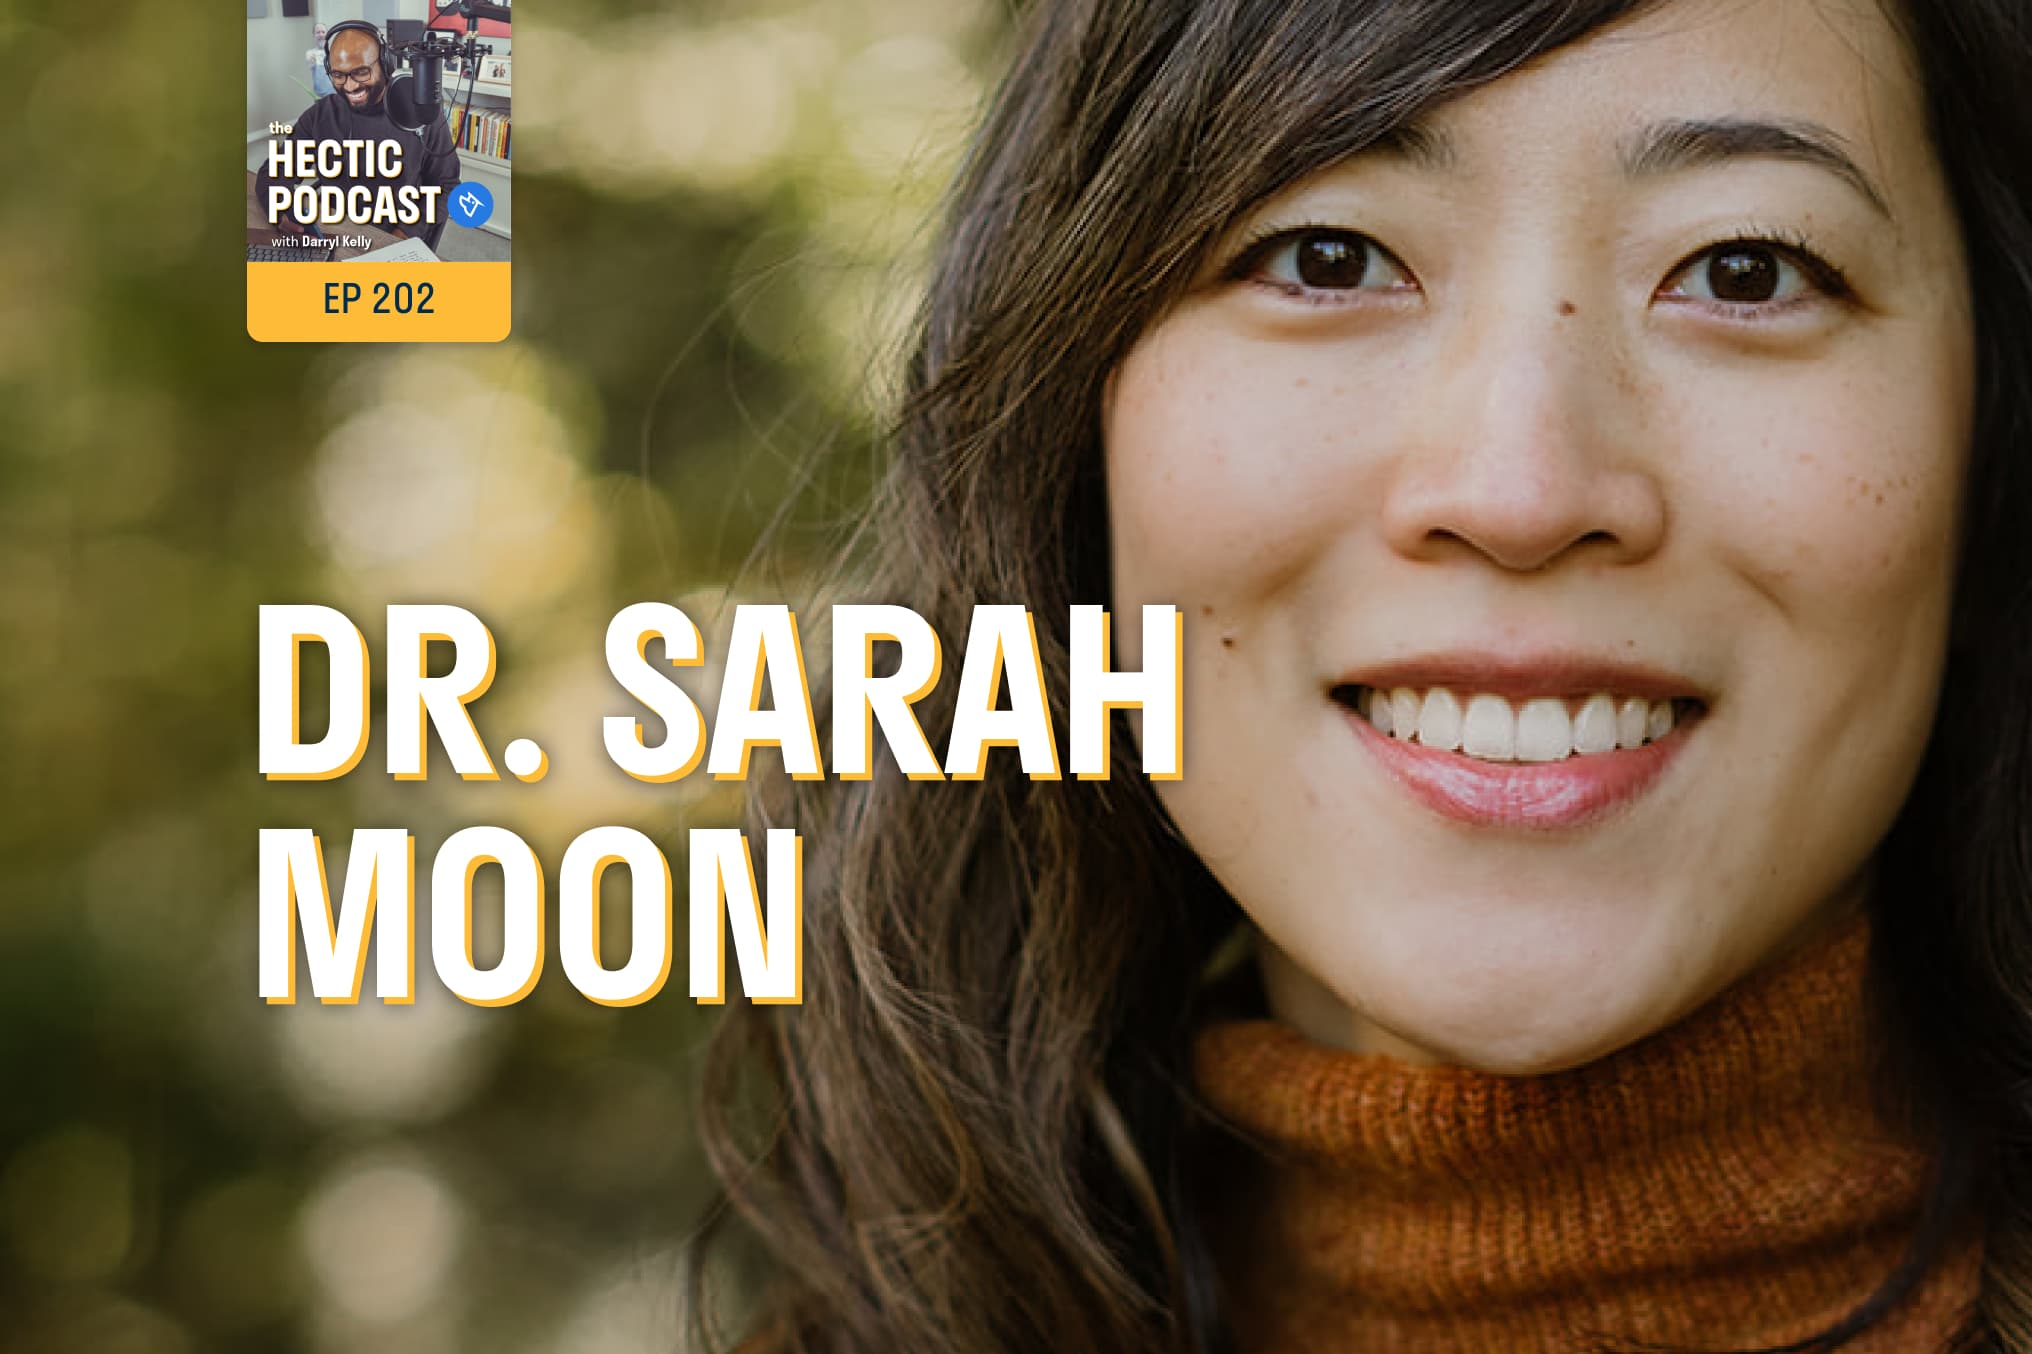 The Hectic Podcast: Dr. Sarah Moon